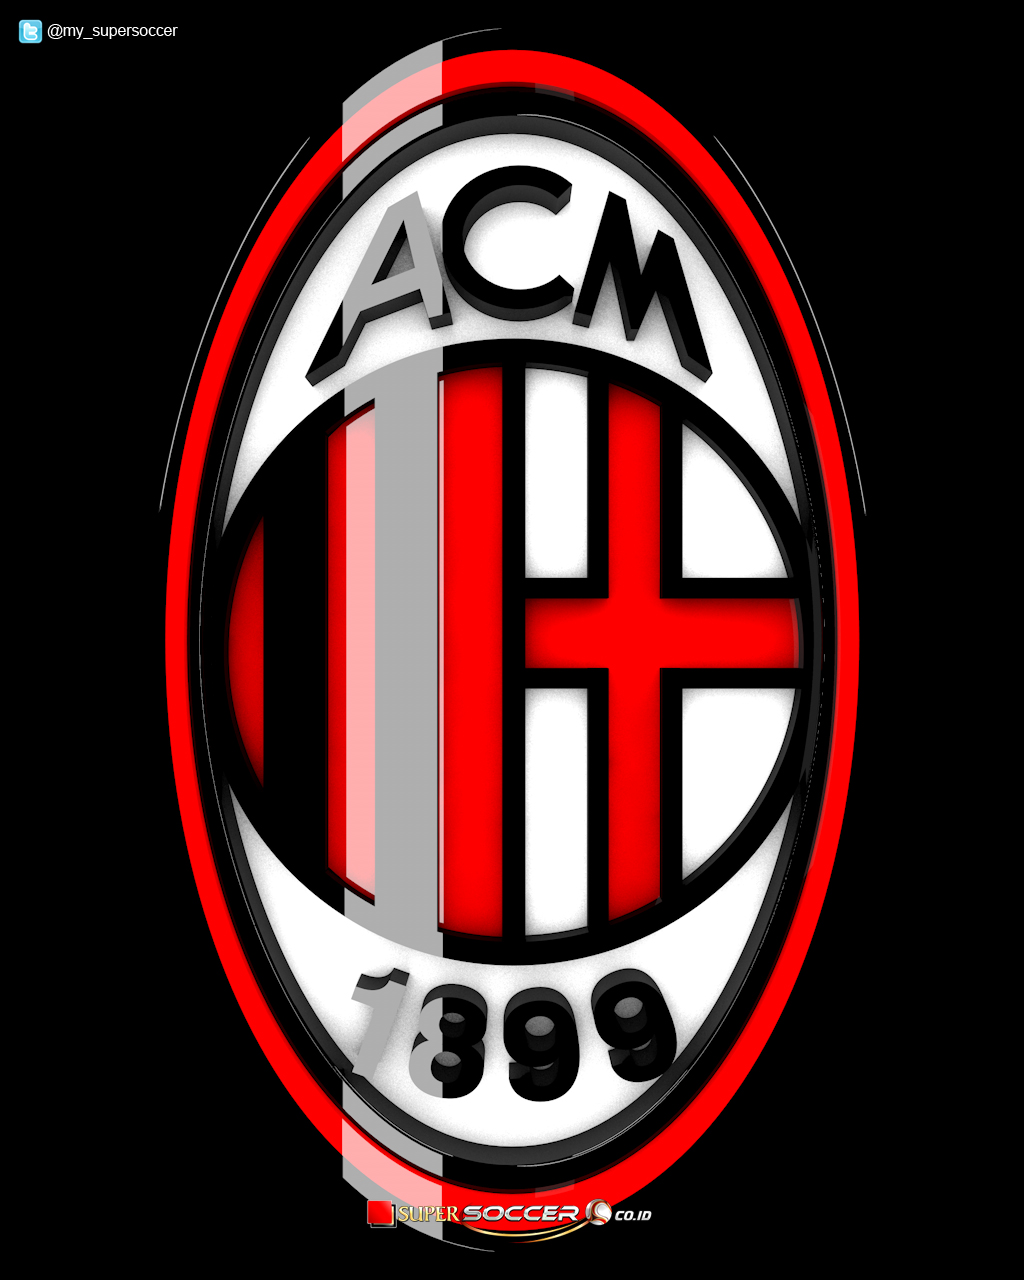 free download ac milan 2015 home search results for wallpaper lambang ac milan 2015 1024x1280 for your desktop mobile tablet explore 48 logo ac milan wallpaper 2015 ac milan logo ac milan wallpaper